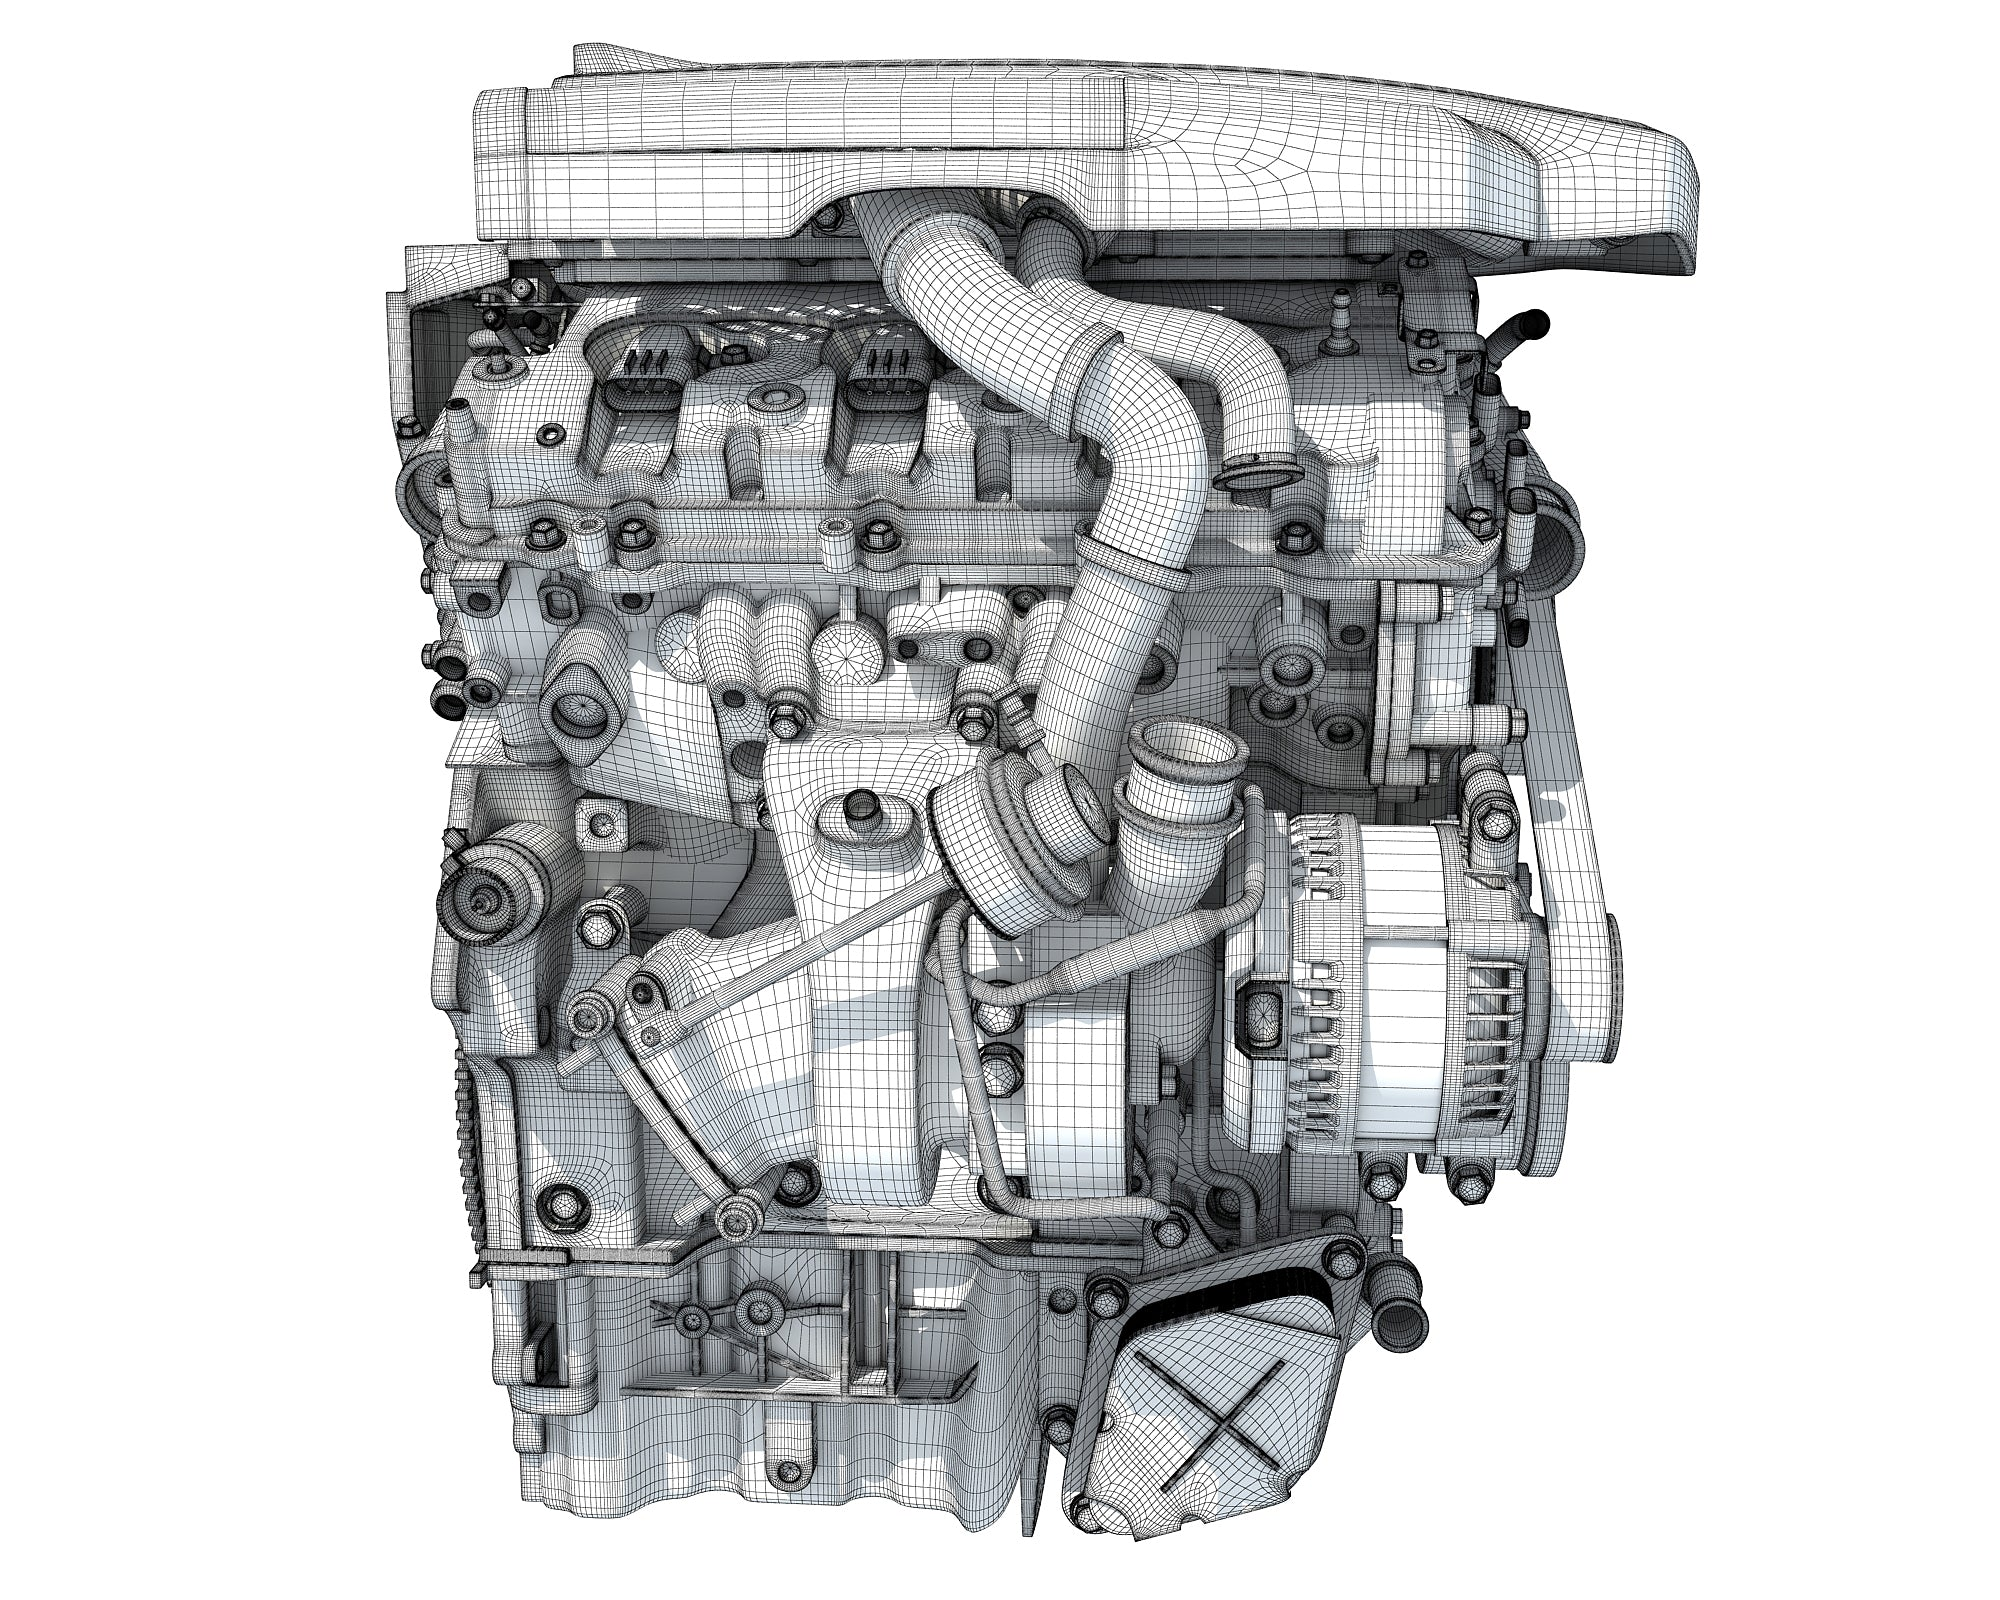 CadillacV6 Engine